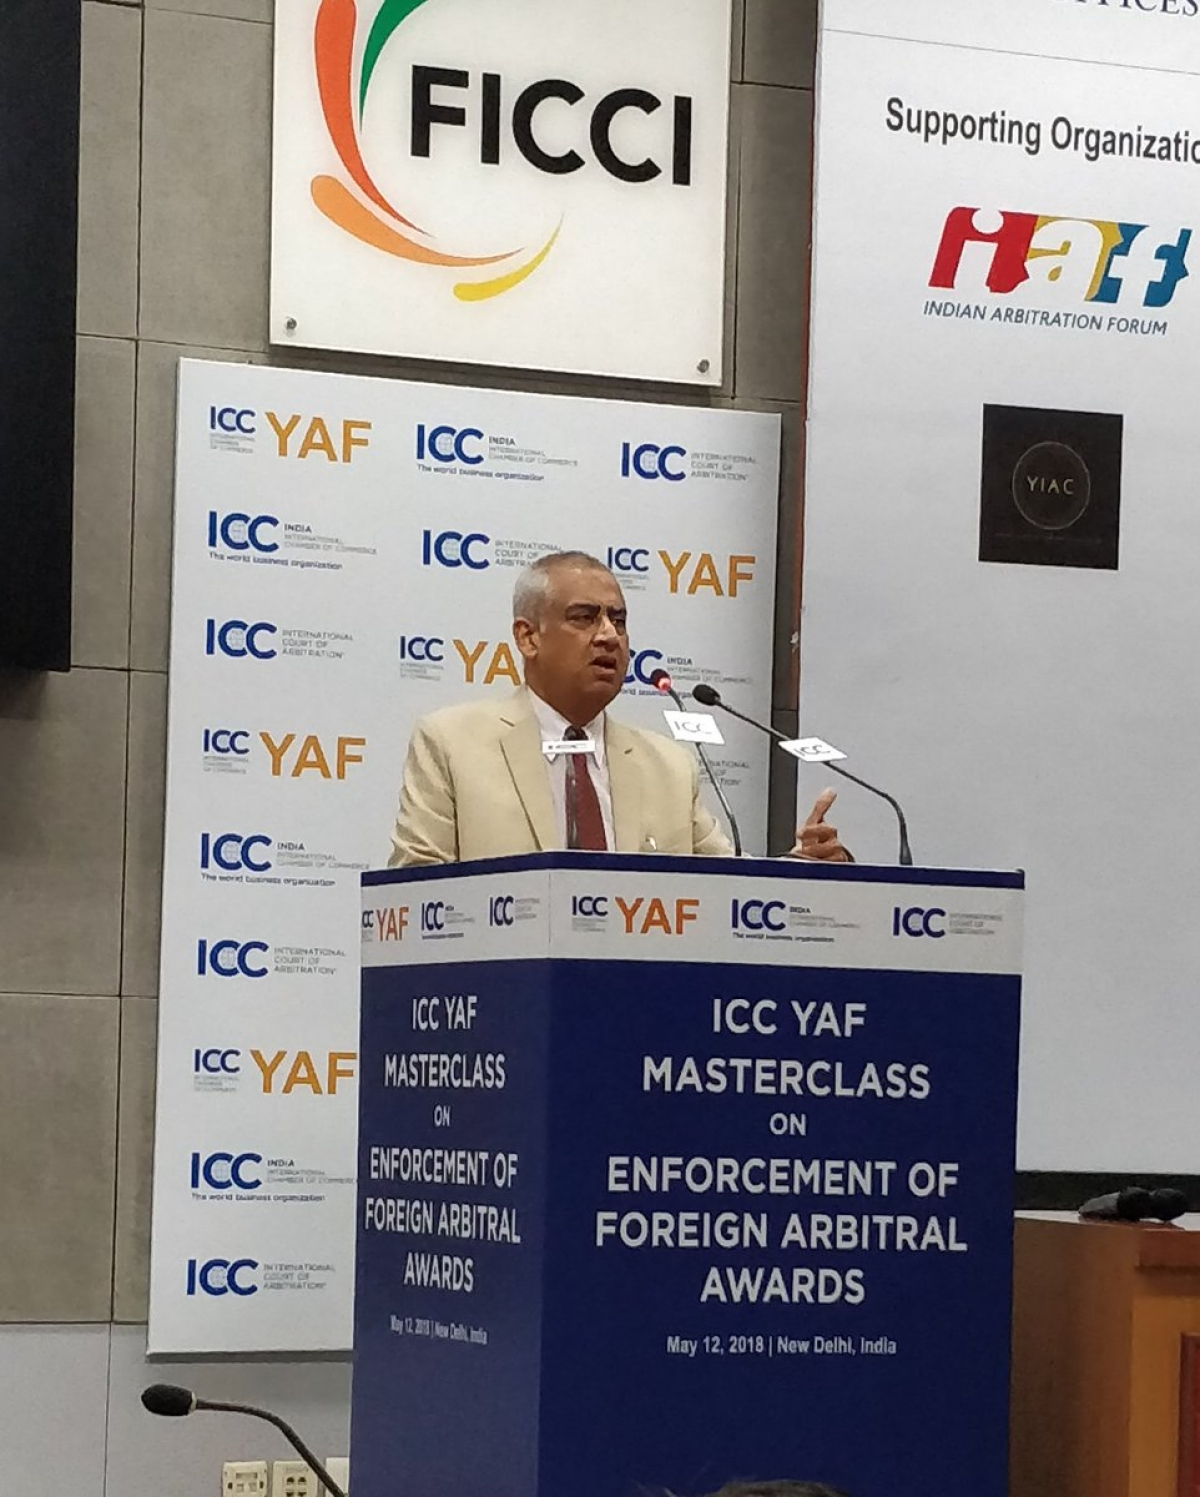 ICC YAF holds Masterclass on Enforcement of Foreign Arbitral Awards